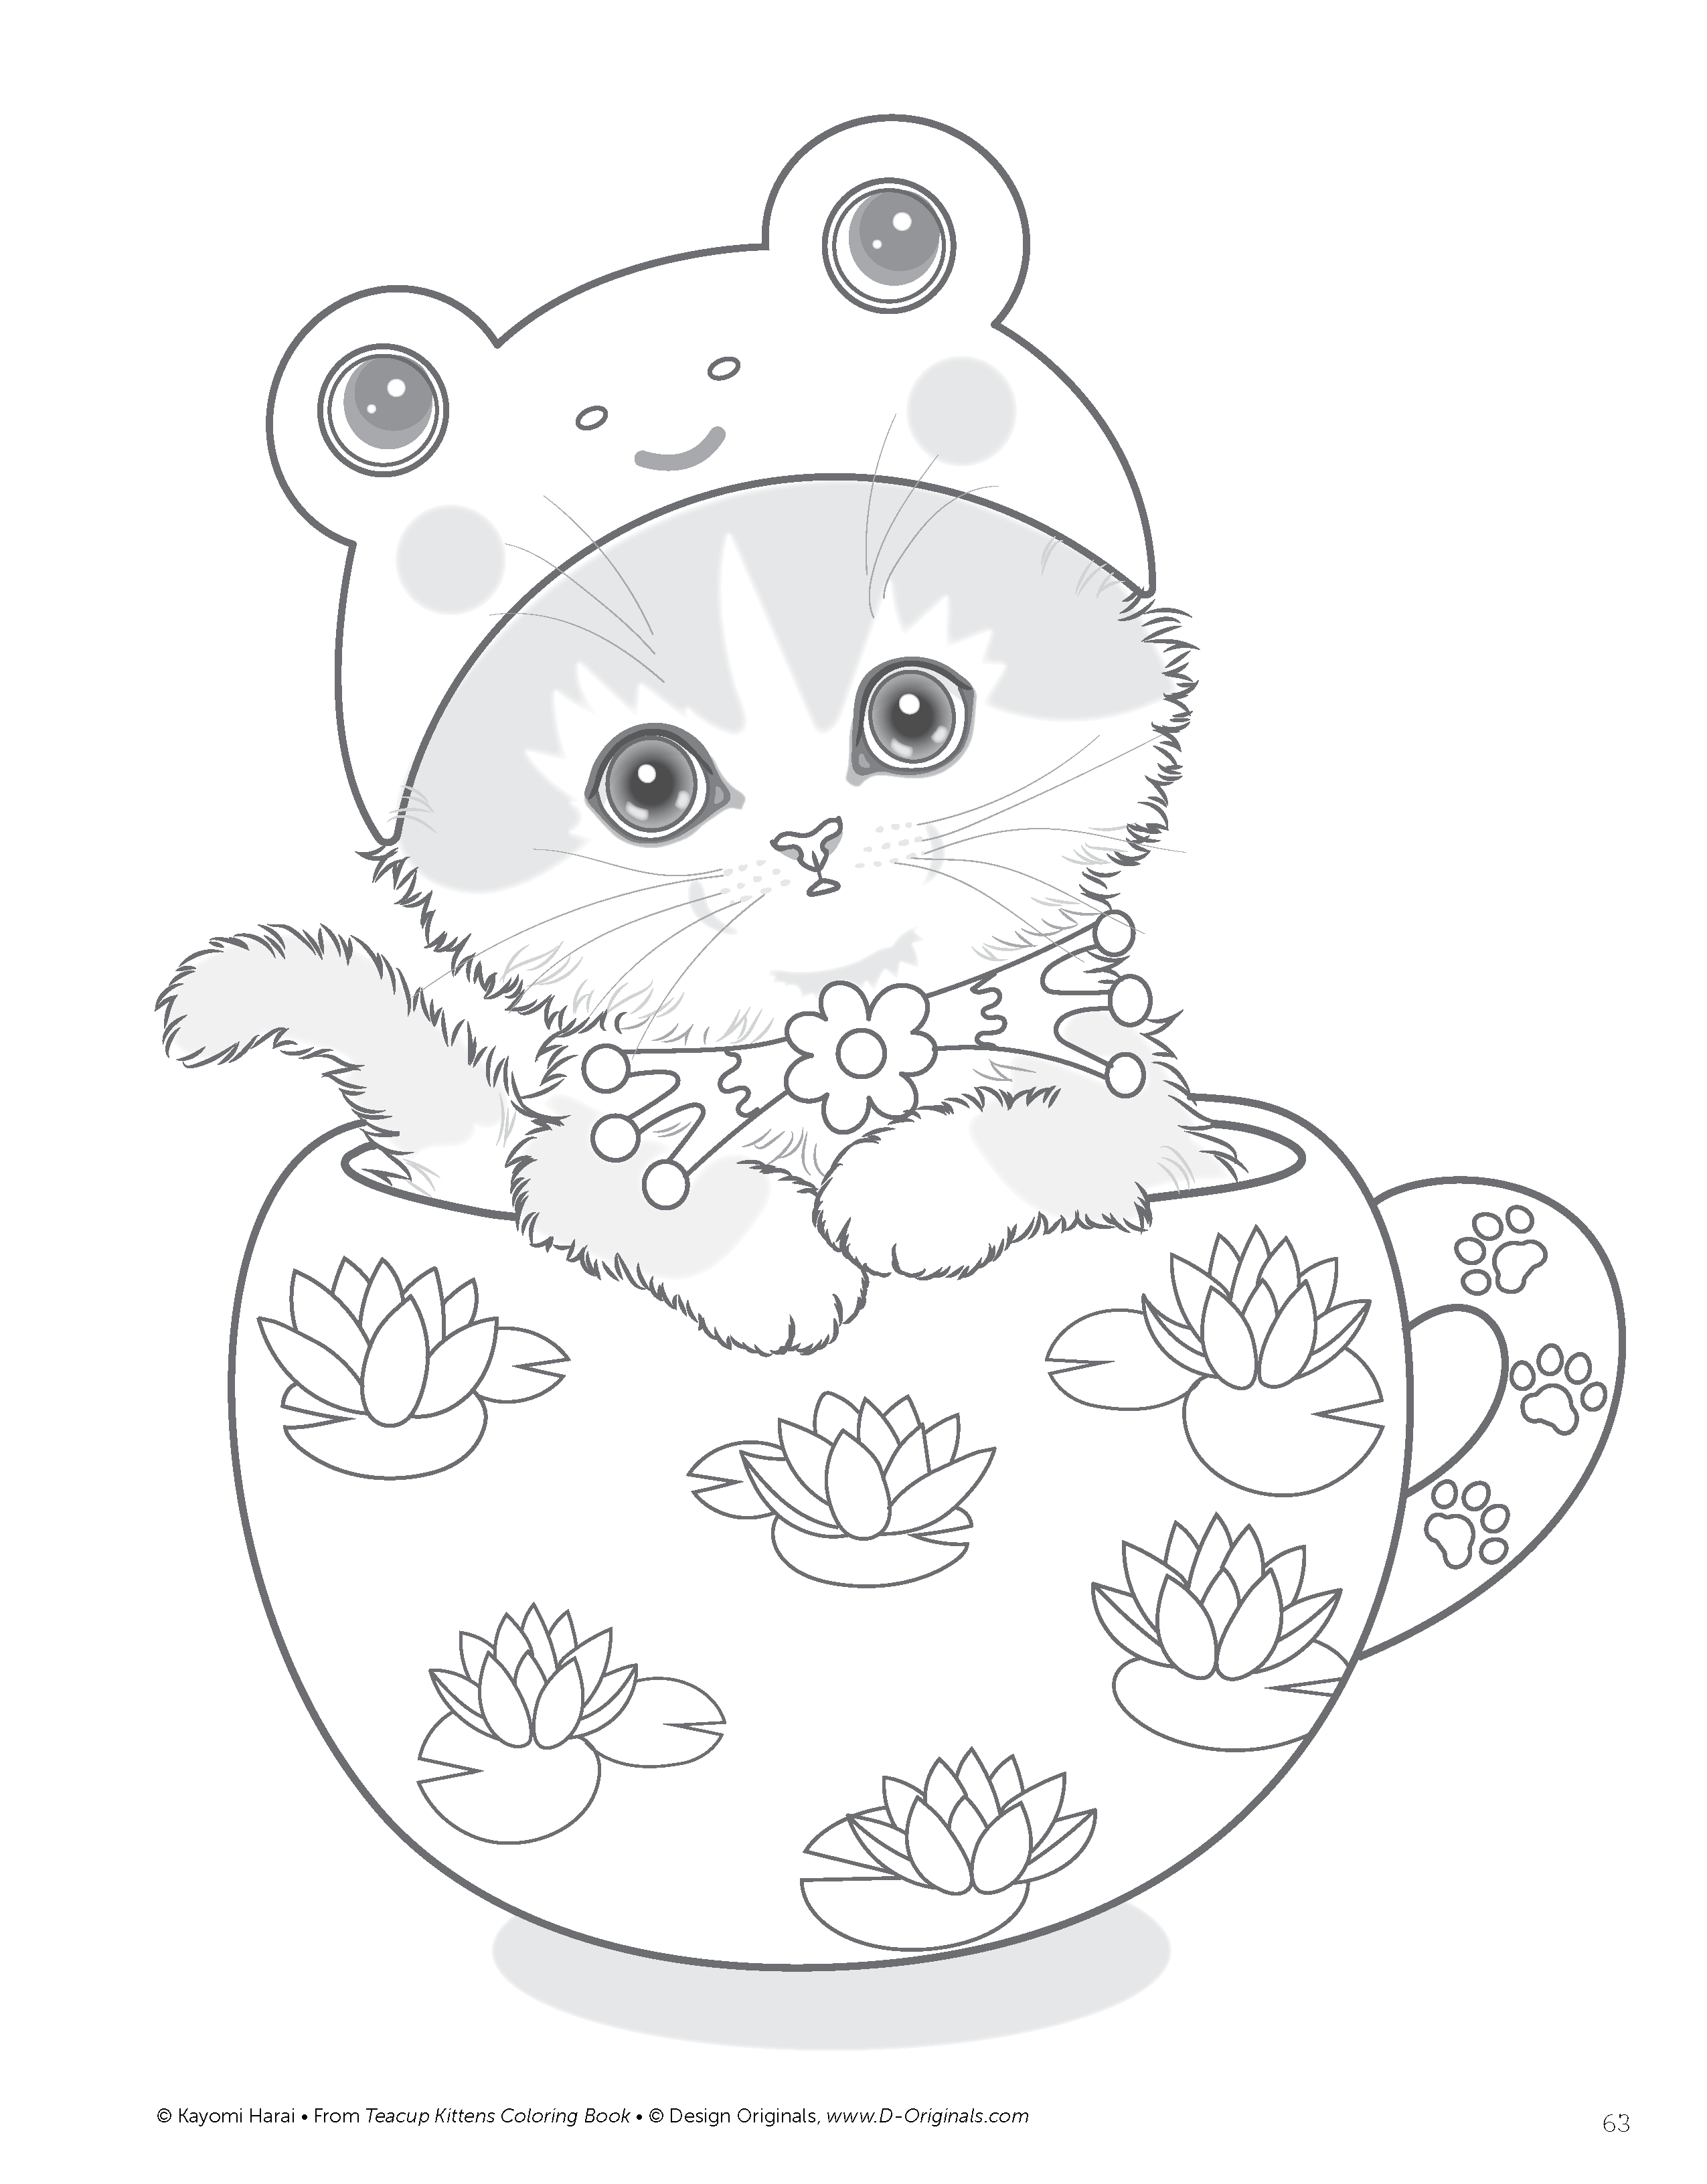 cute kitten colouring pages cute kitten with bow tie coloring page free printable cute kitten pages colouring